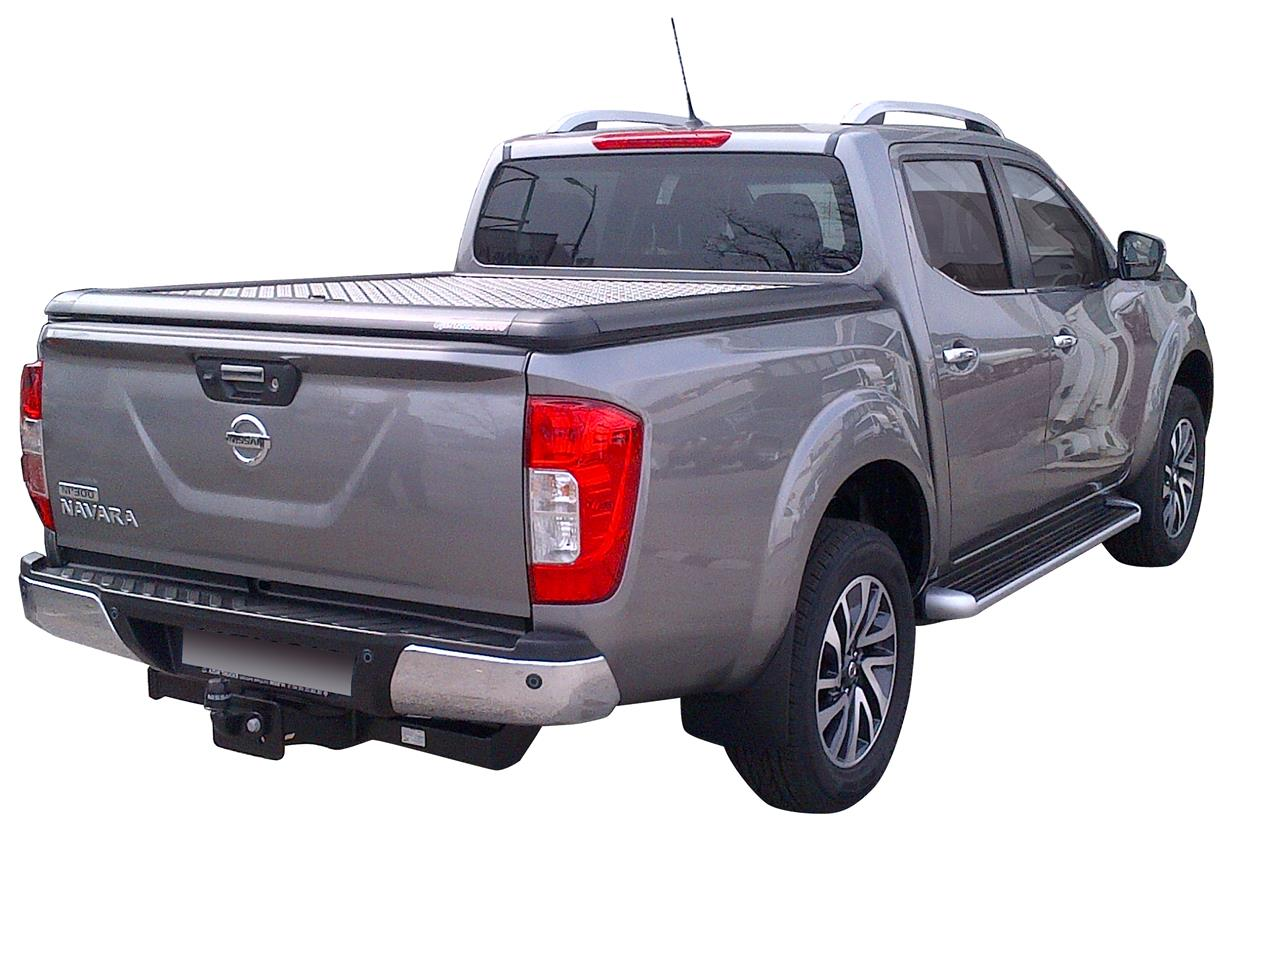 evo320 tonneau cover alu nissan navara np300 2016 double cabine nissan navara np300. Black Bedroom Furniture Sets. Home Design Ideas